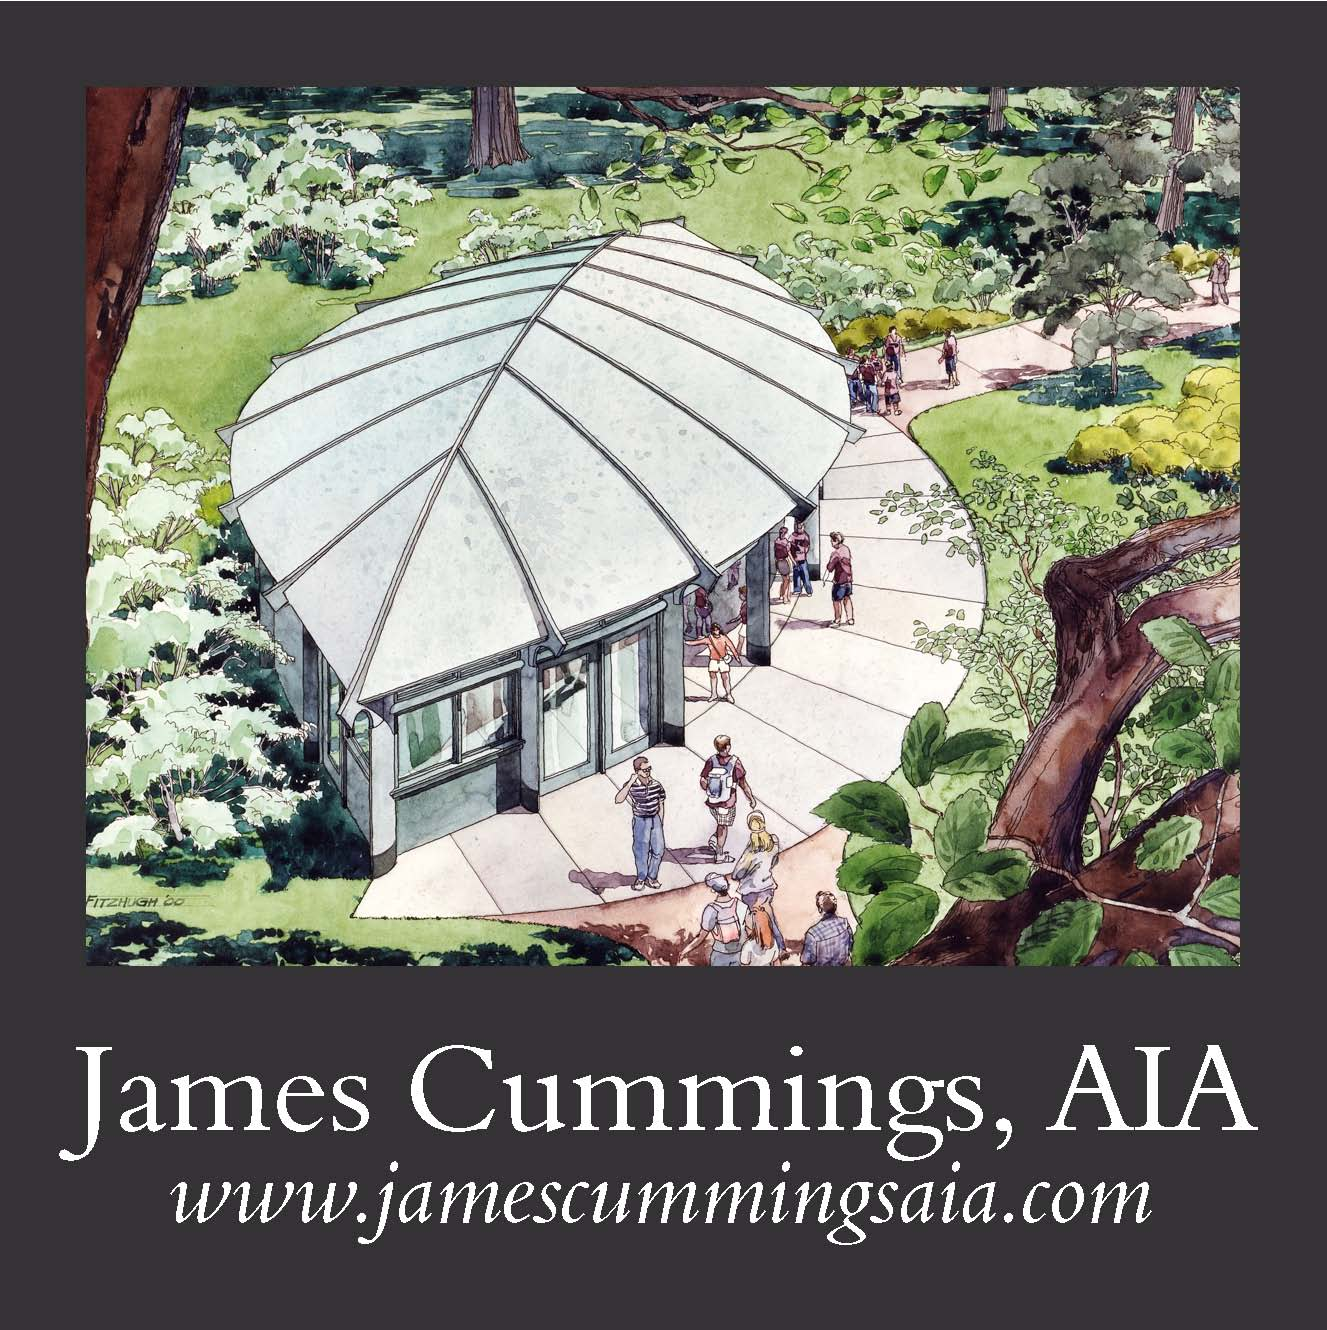 James Cummings, AIA